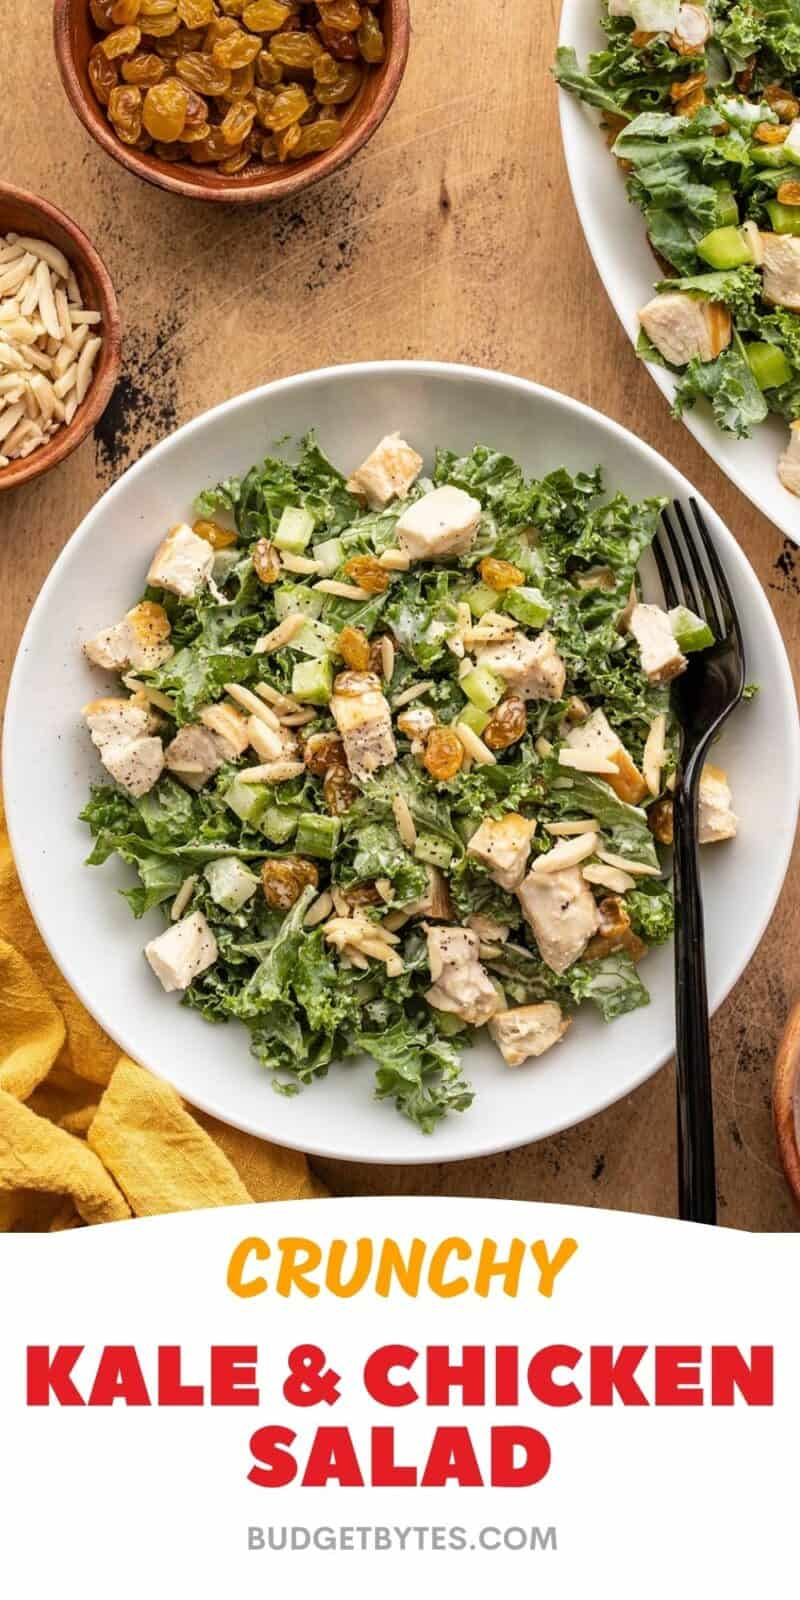 A bowl of dressed kale and chicken salad next to the serving dish